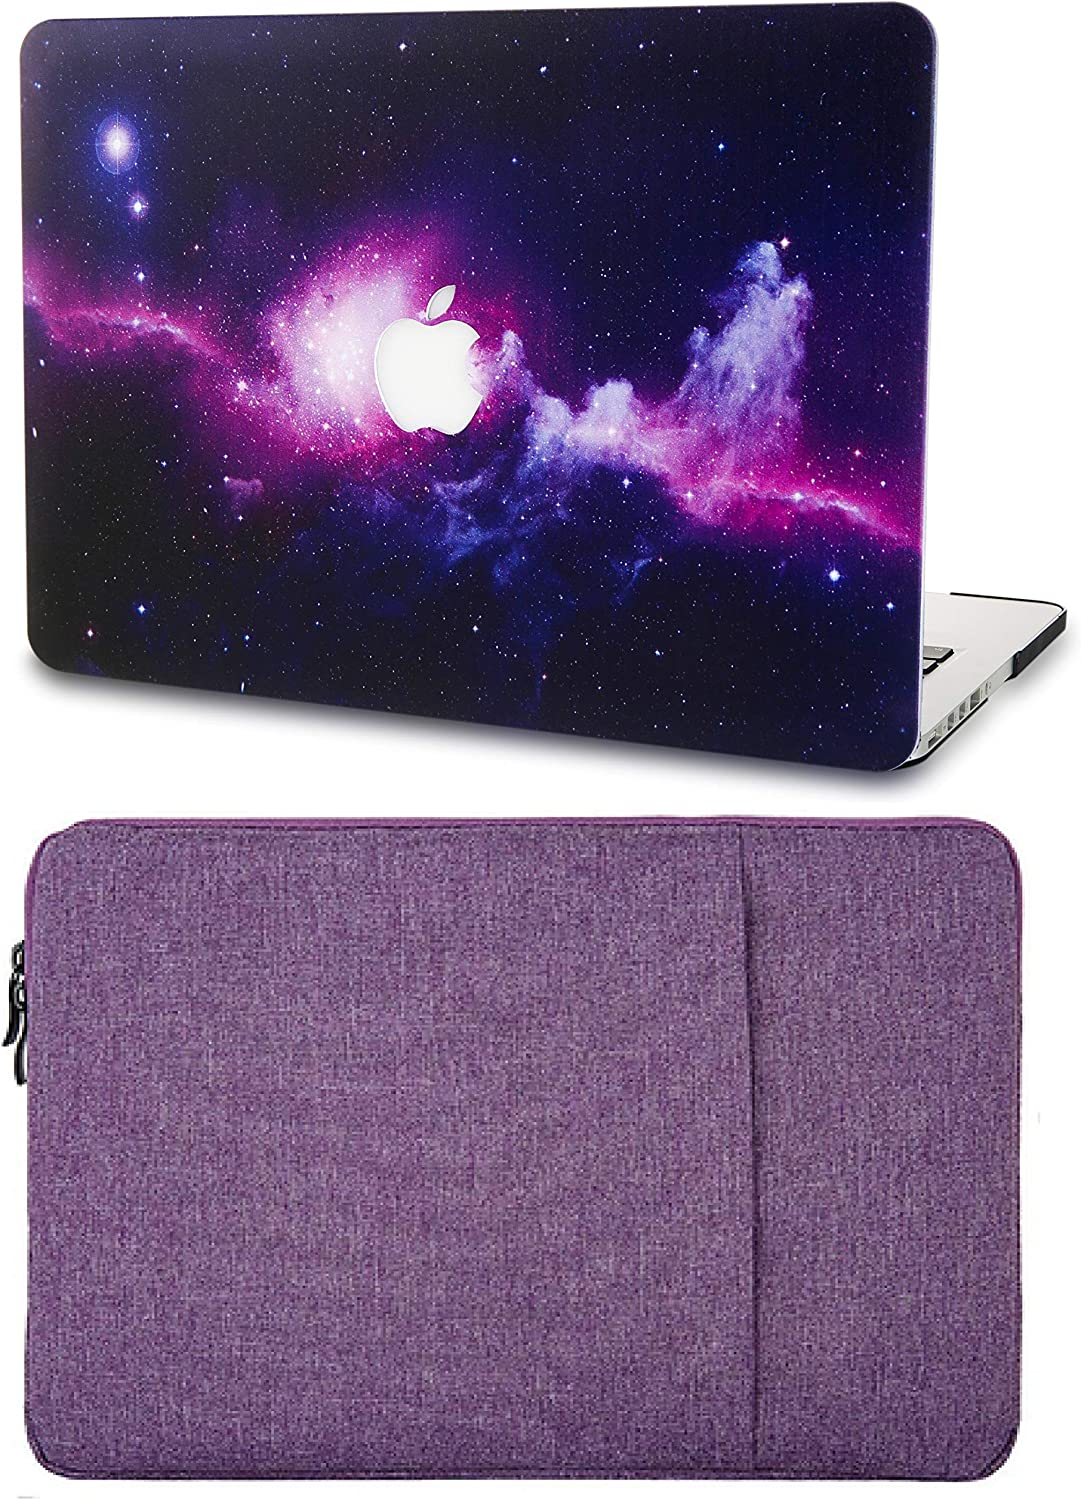 "KECC Laptop Case for MacBook Air 13"" with Sleeve Plastic Hard Shell Case A1466/A1369 2 in 1 Bundle (Purple)"